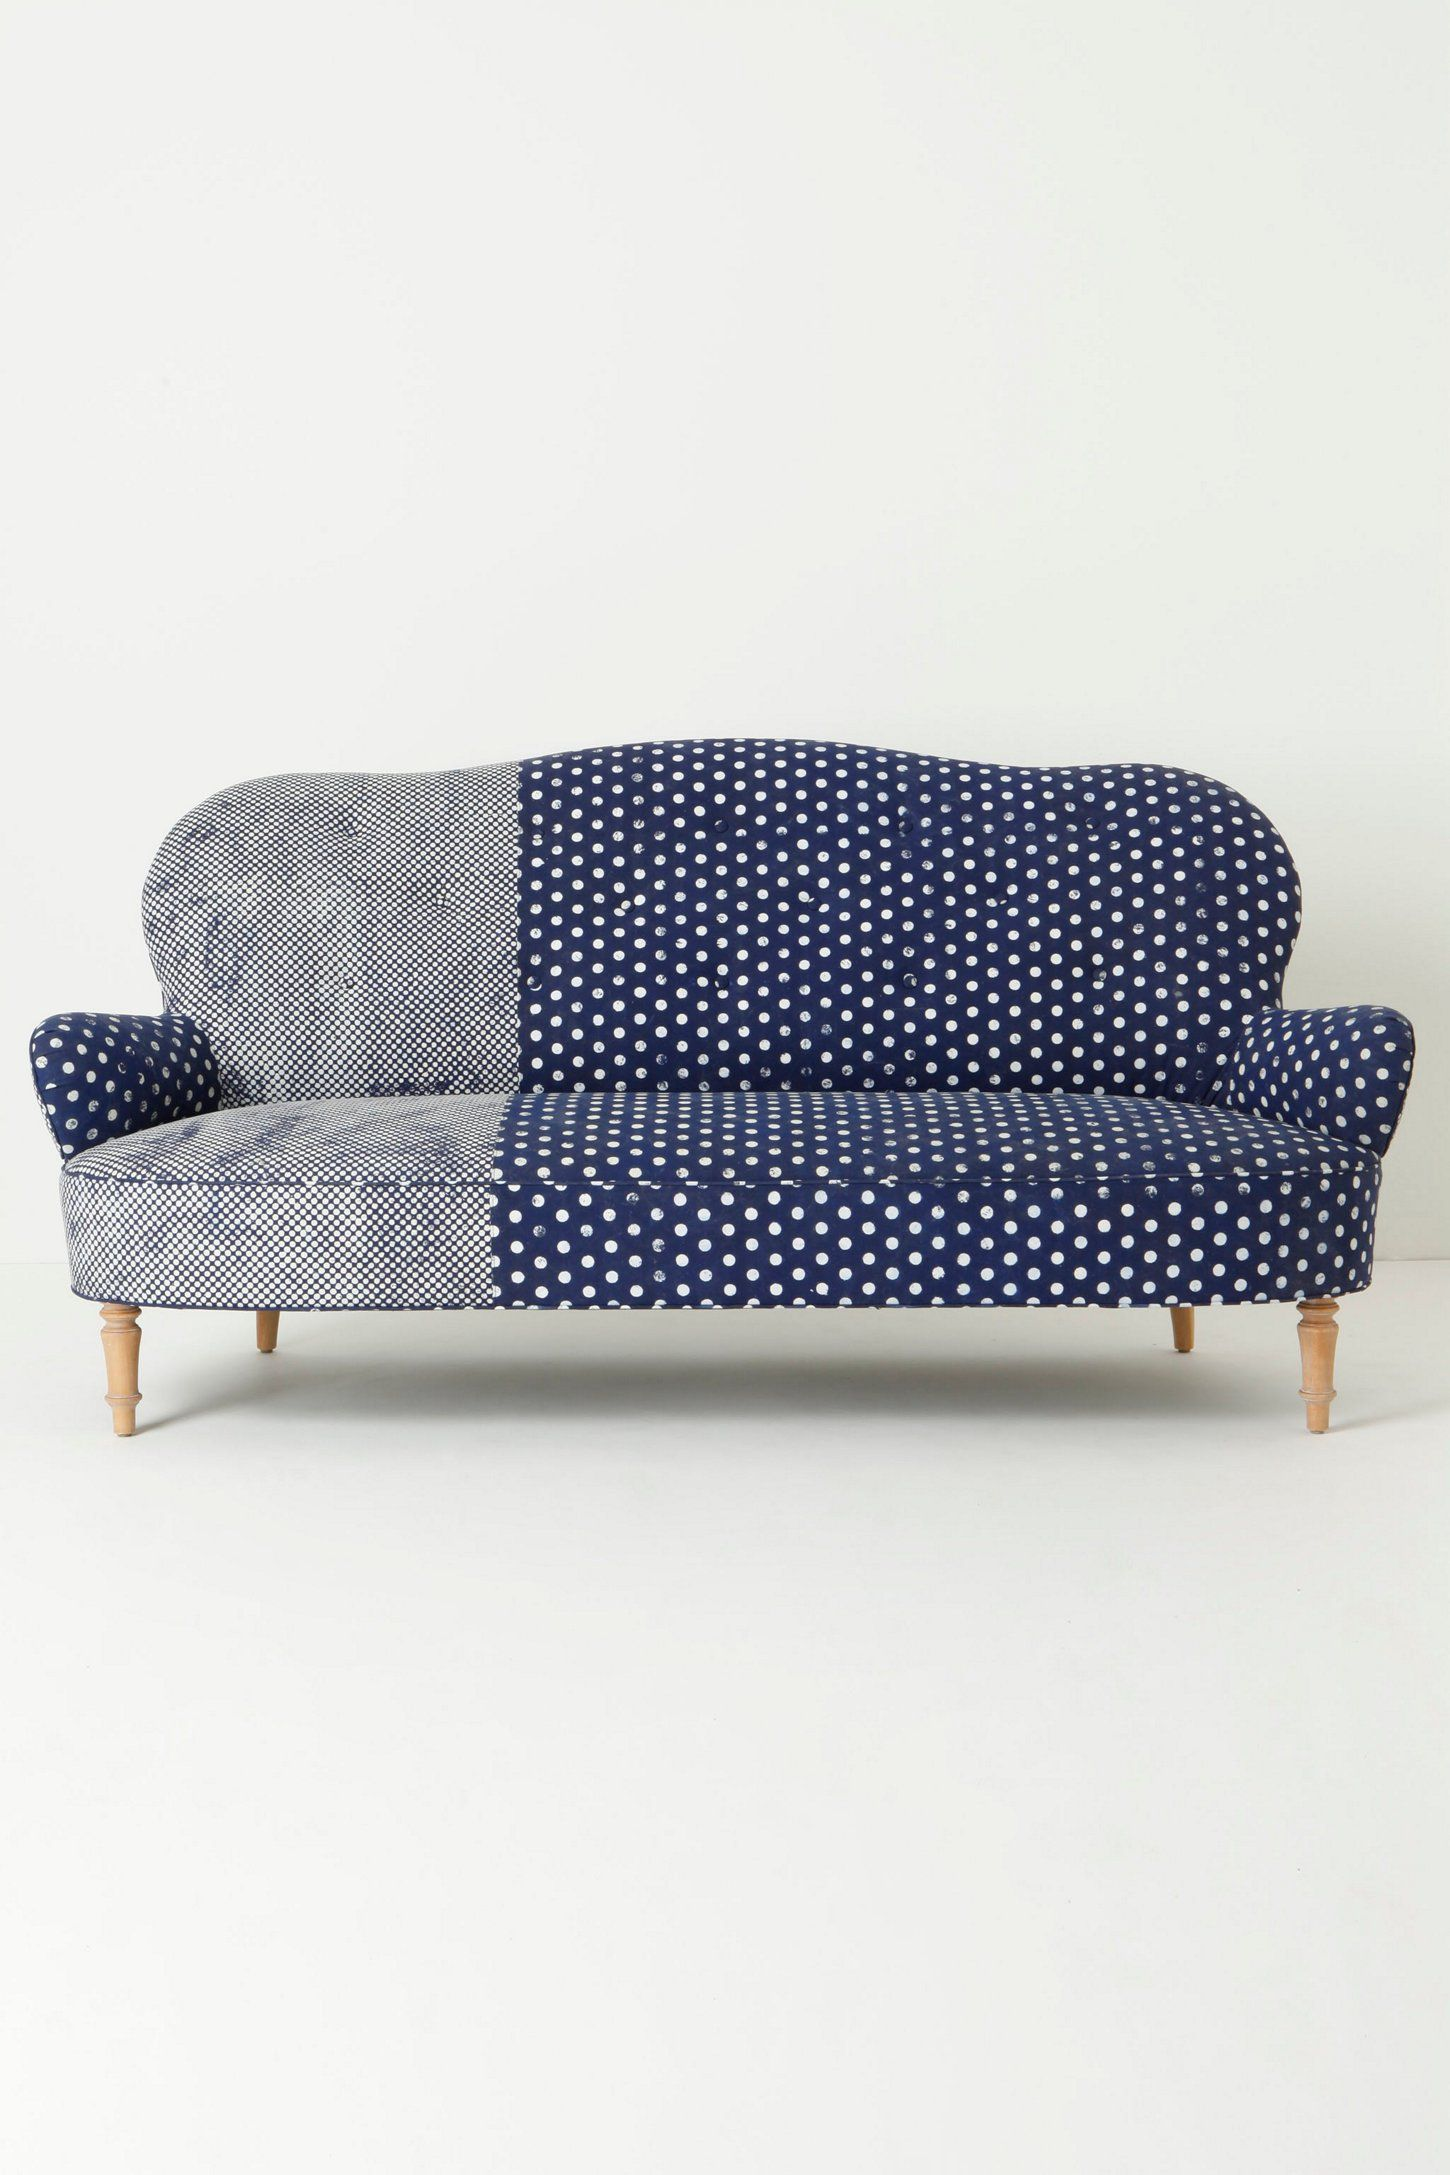 Contrast Couch Upholstery Inspiration   Anthropologie Mathilde Sofa In  Dots Delicacies